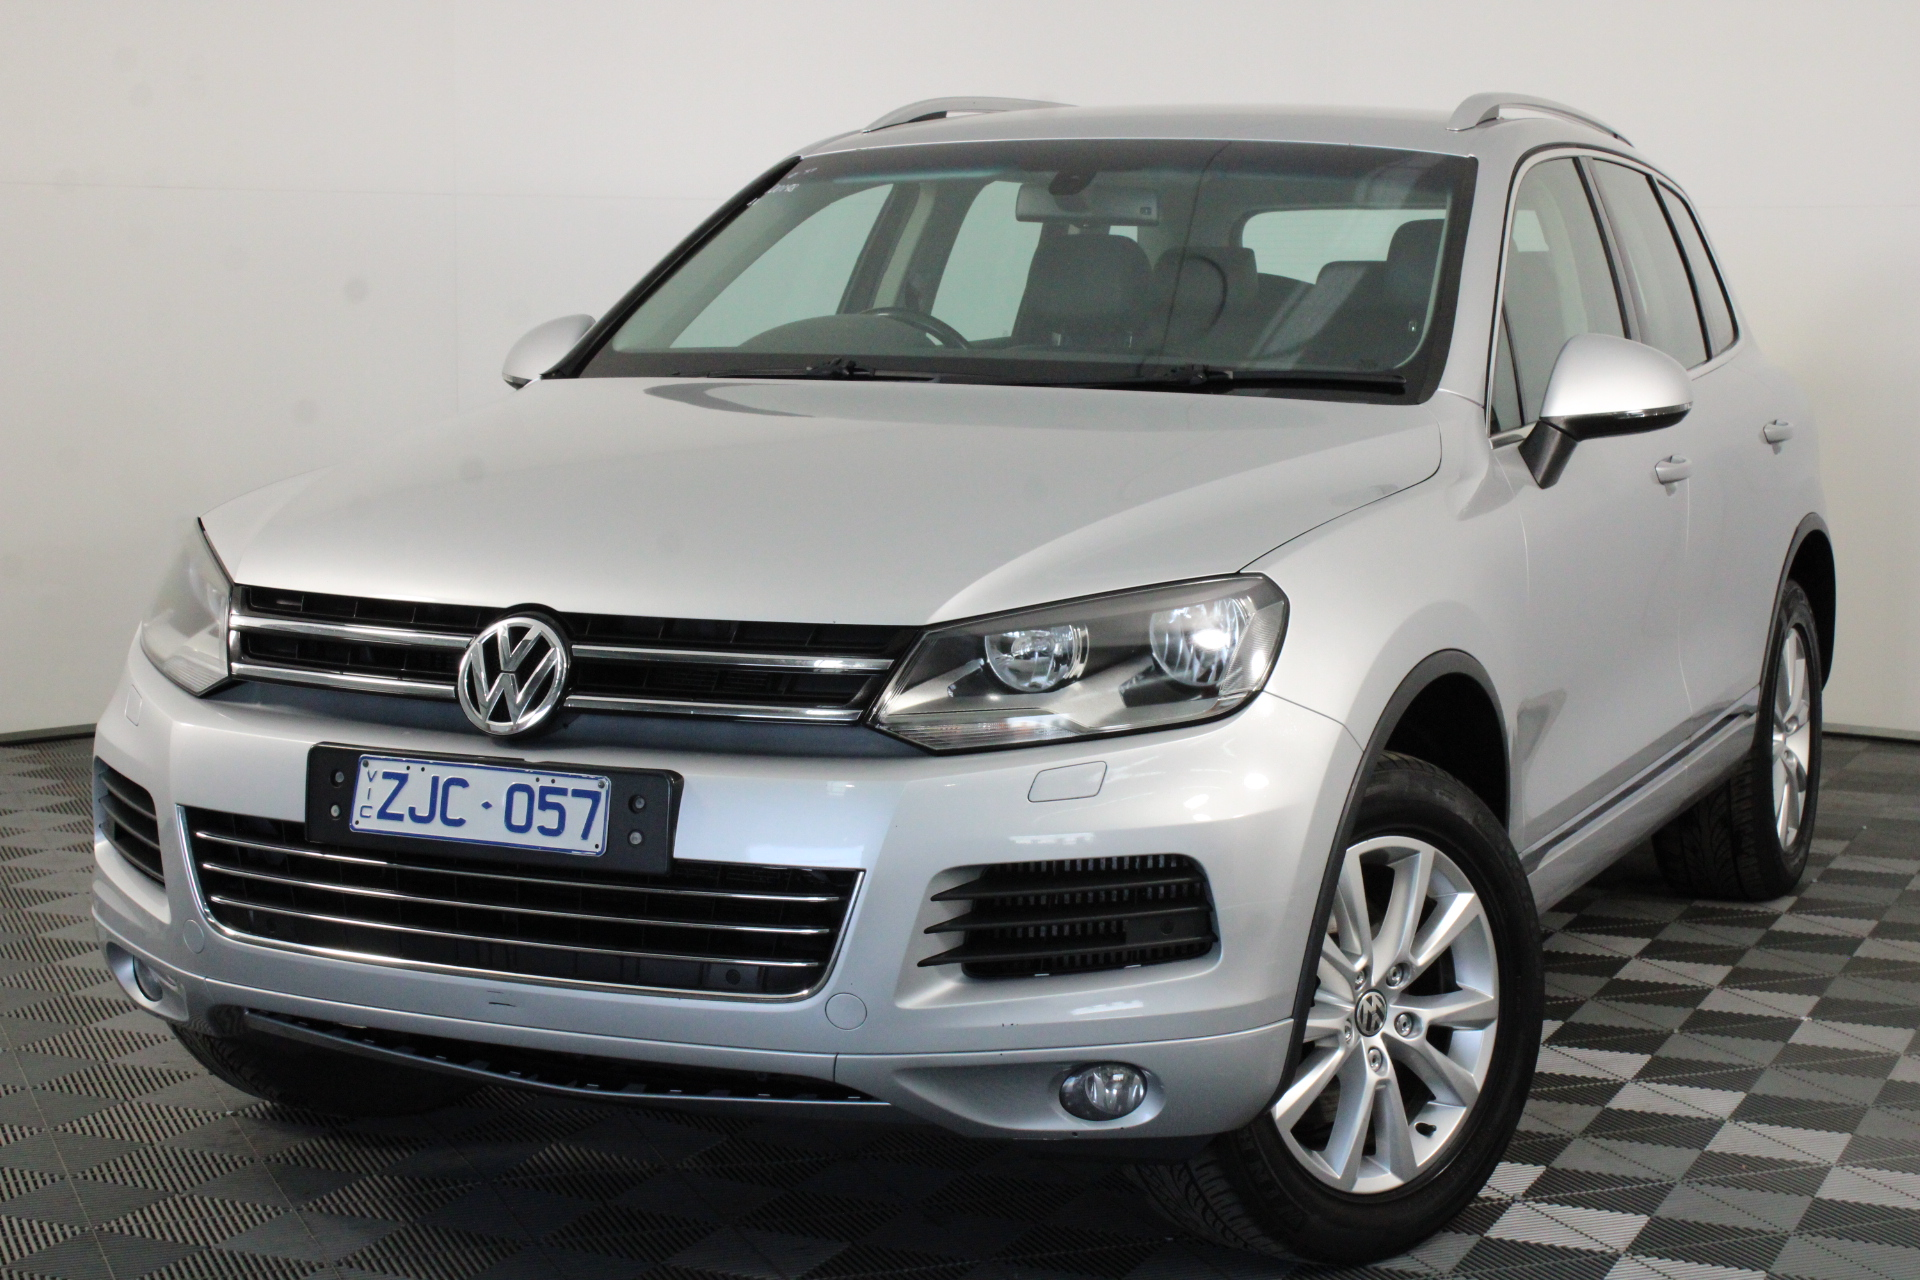 2012 Volkswagen Touareg V6 TDI 7P Turbo Diesel Automatic - 8 Speed Wagon